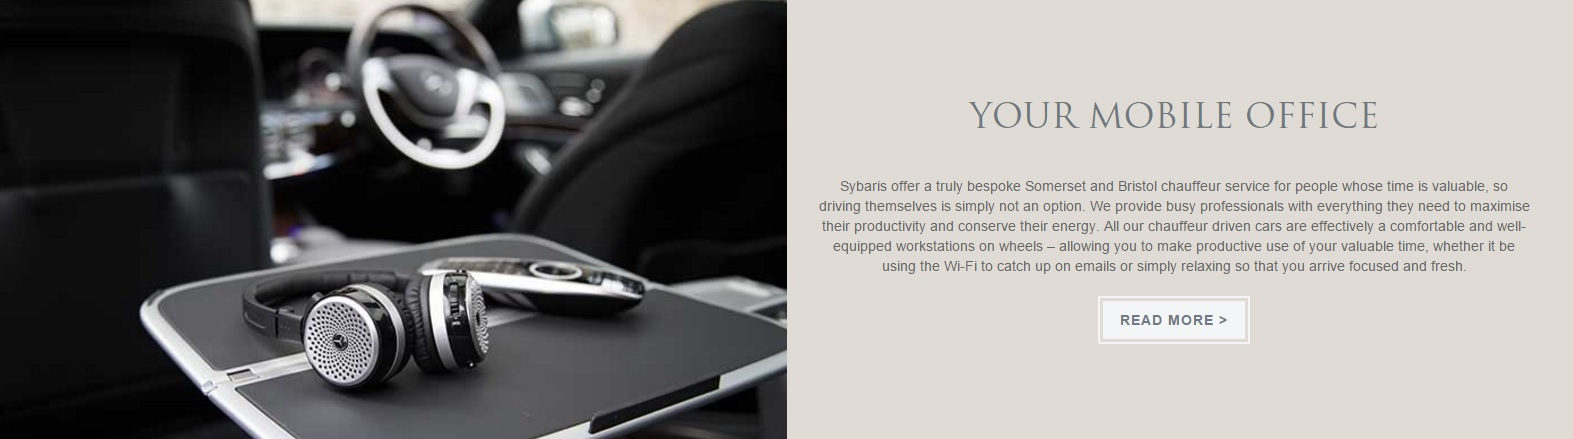 Sybaris mobile office